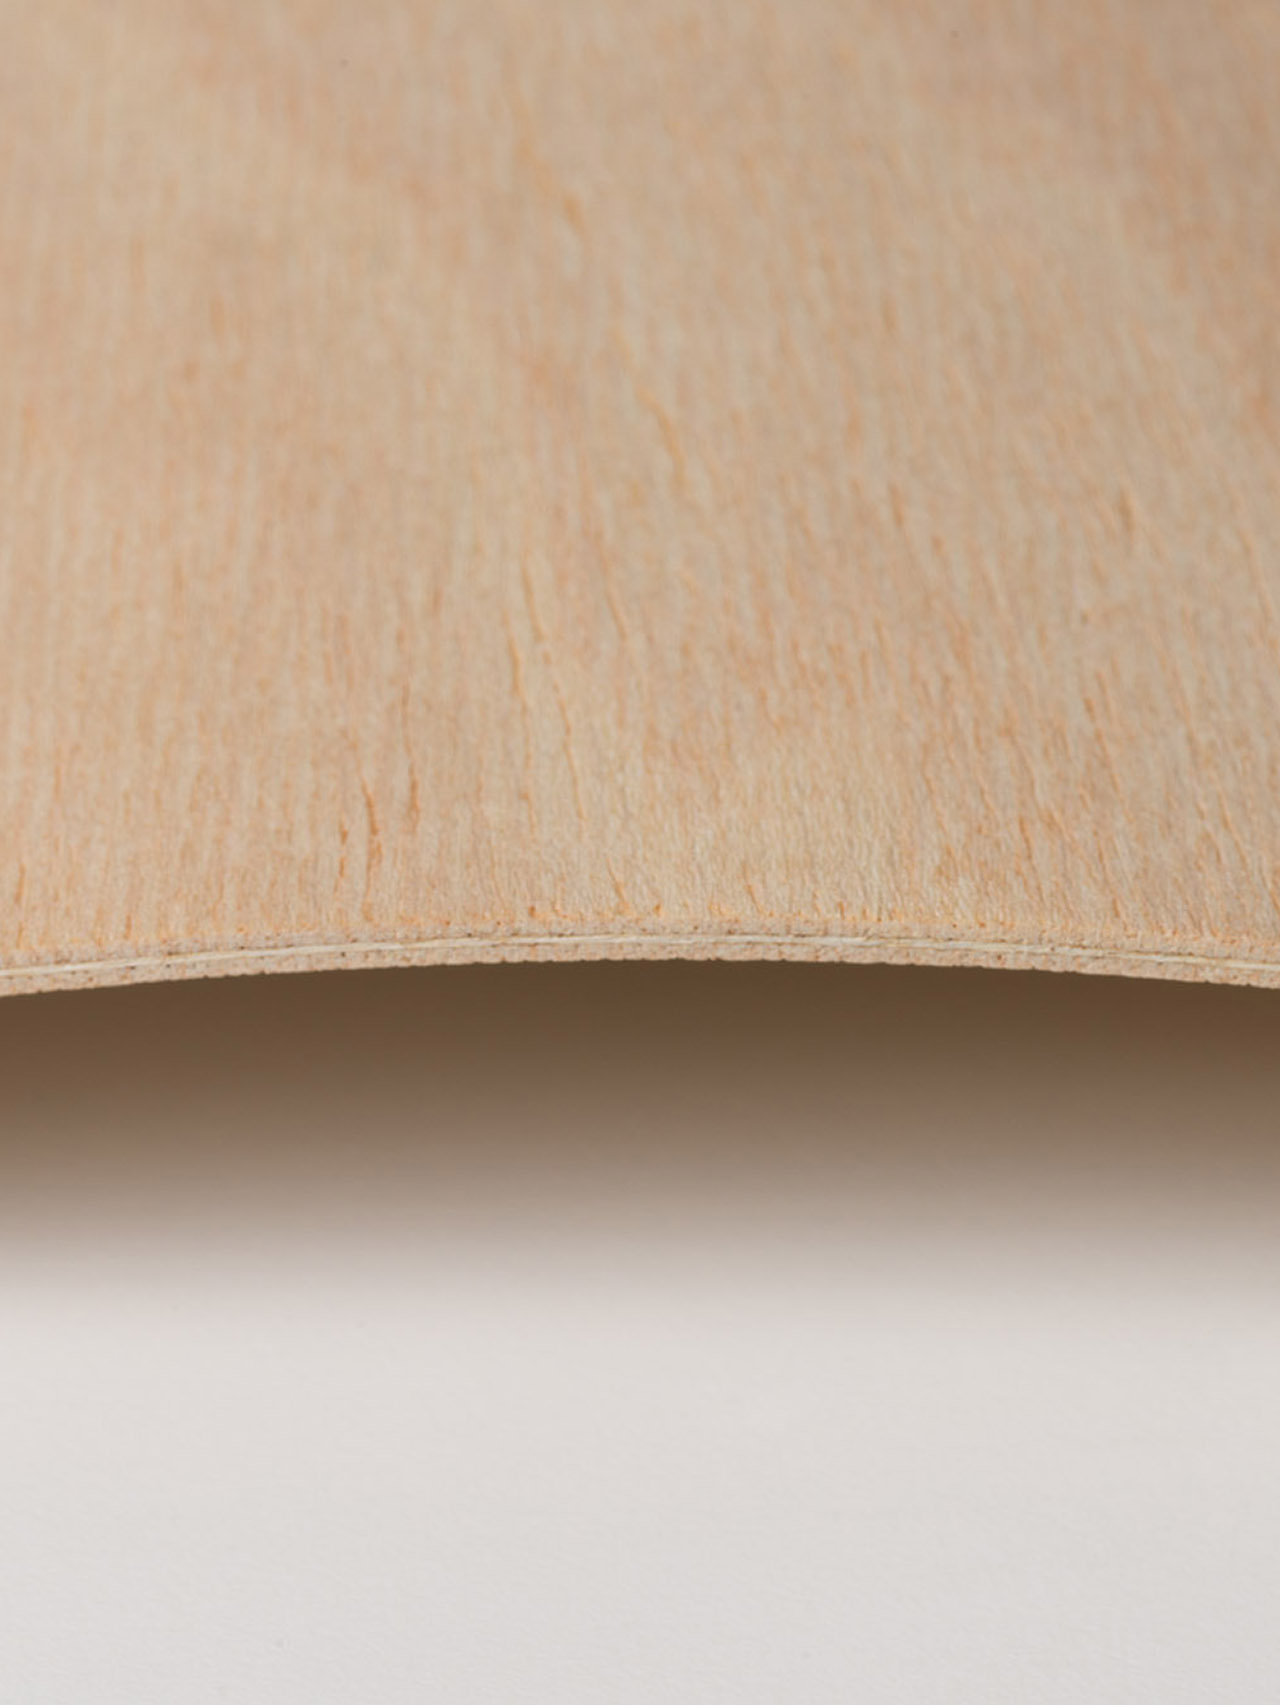 Ceyba Flexible Plywood Paneele